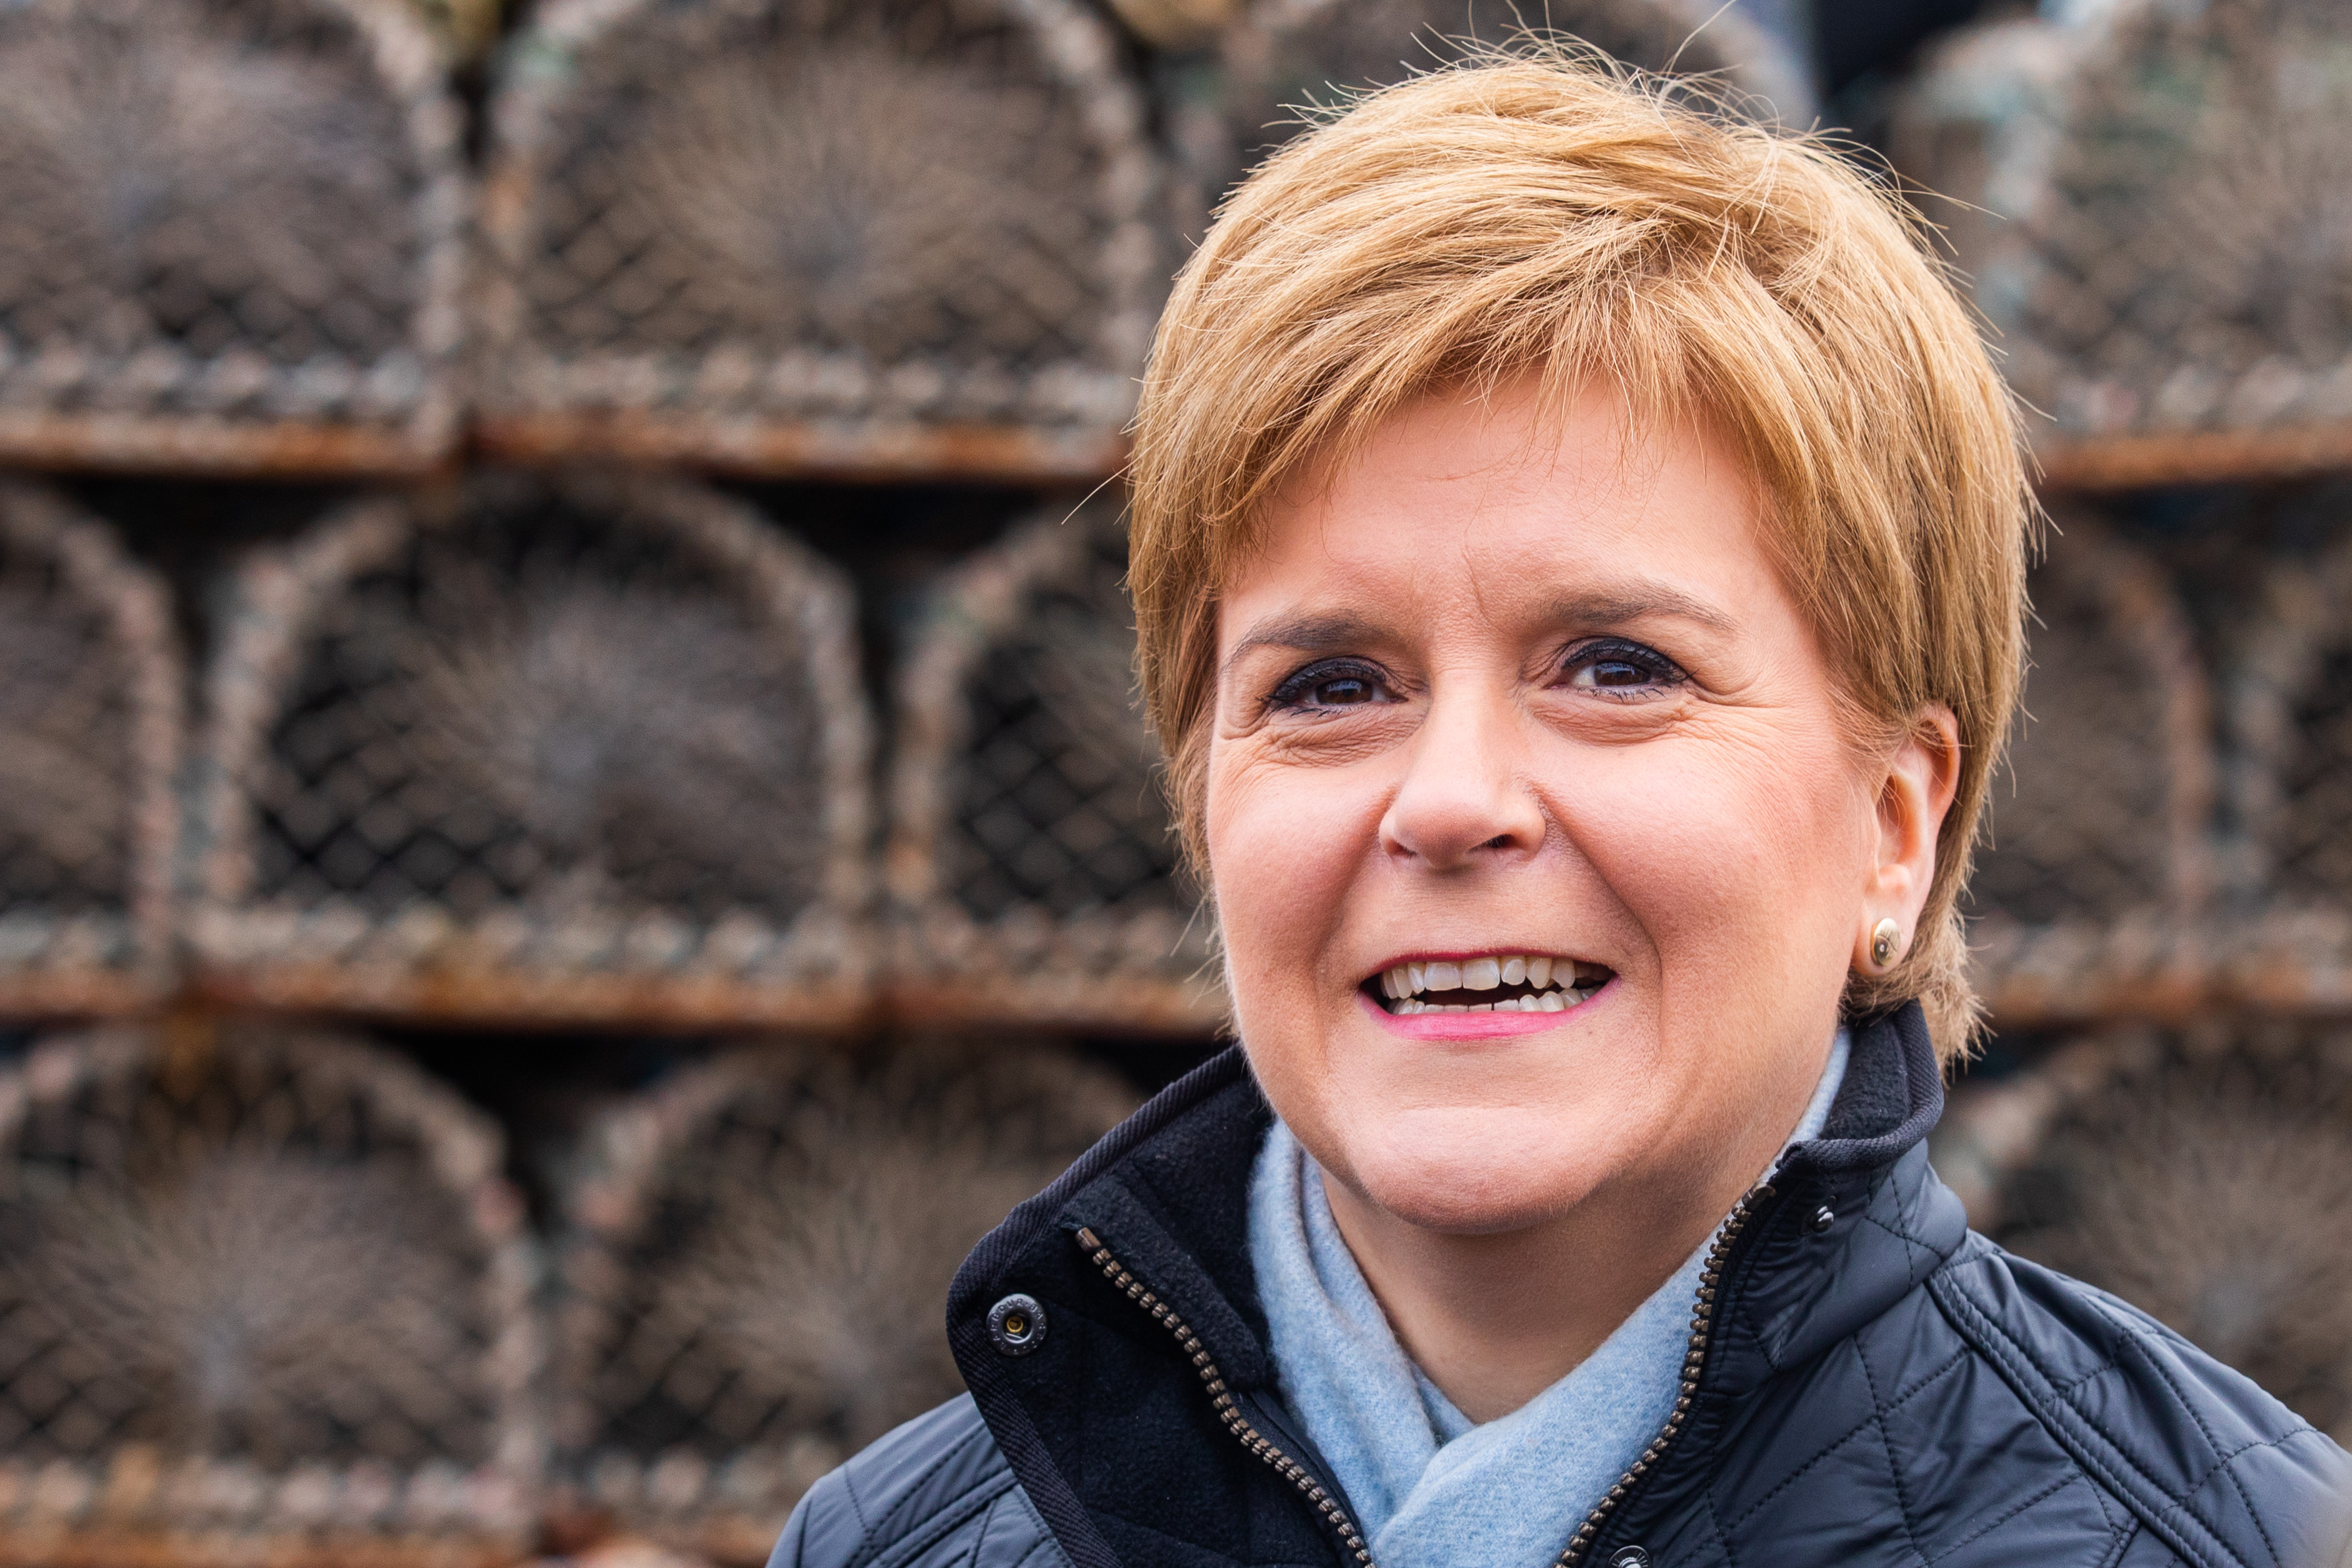 Nicola Sturgeon believes it is time for another independence referendum for Scotland.